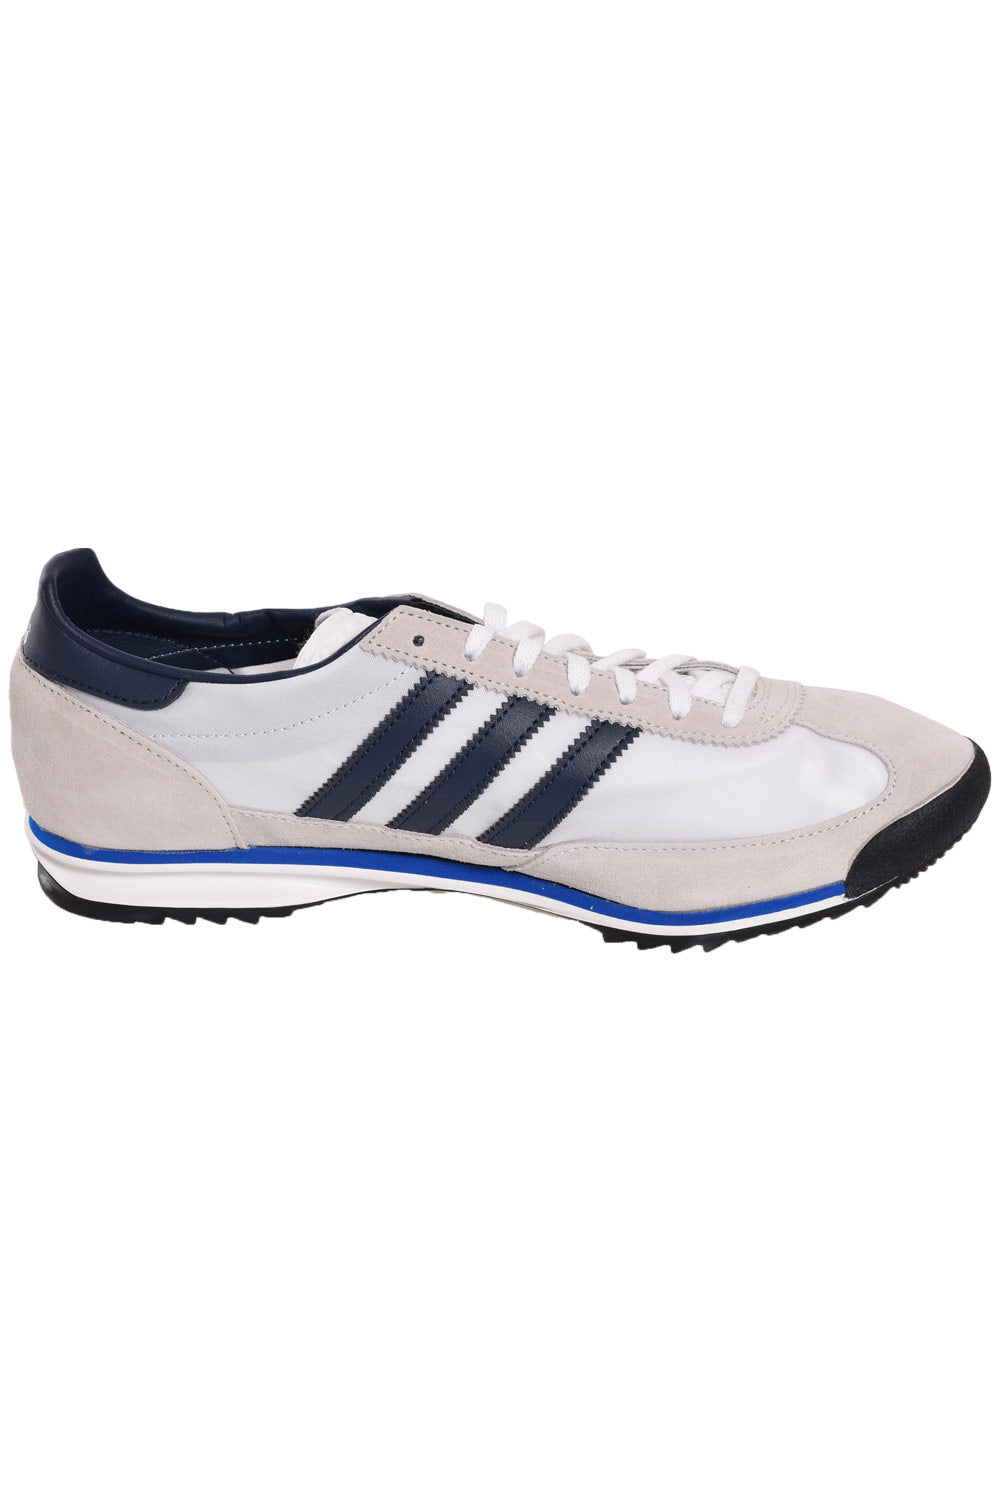 Adidas SL72 Mens Trainers Shoes